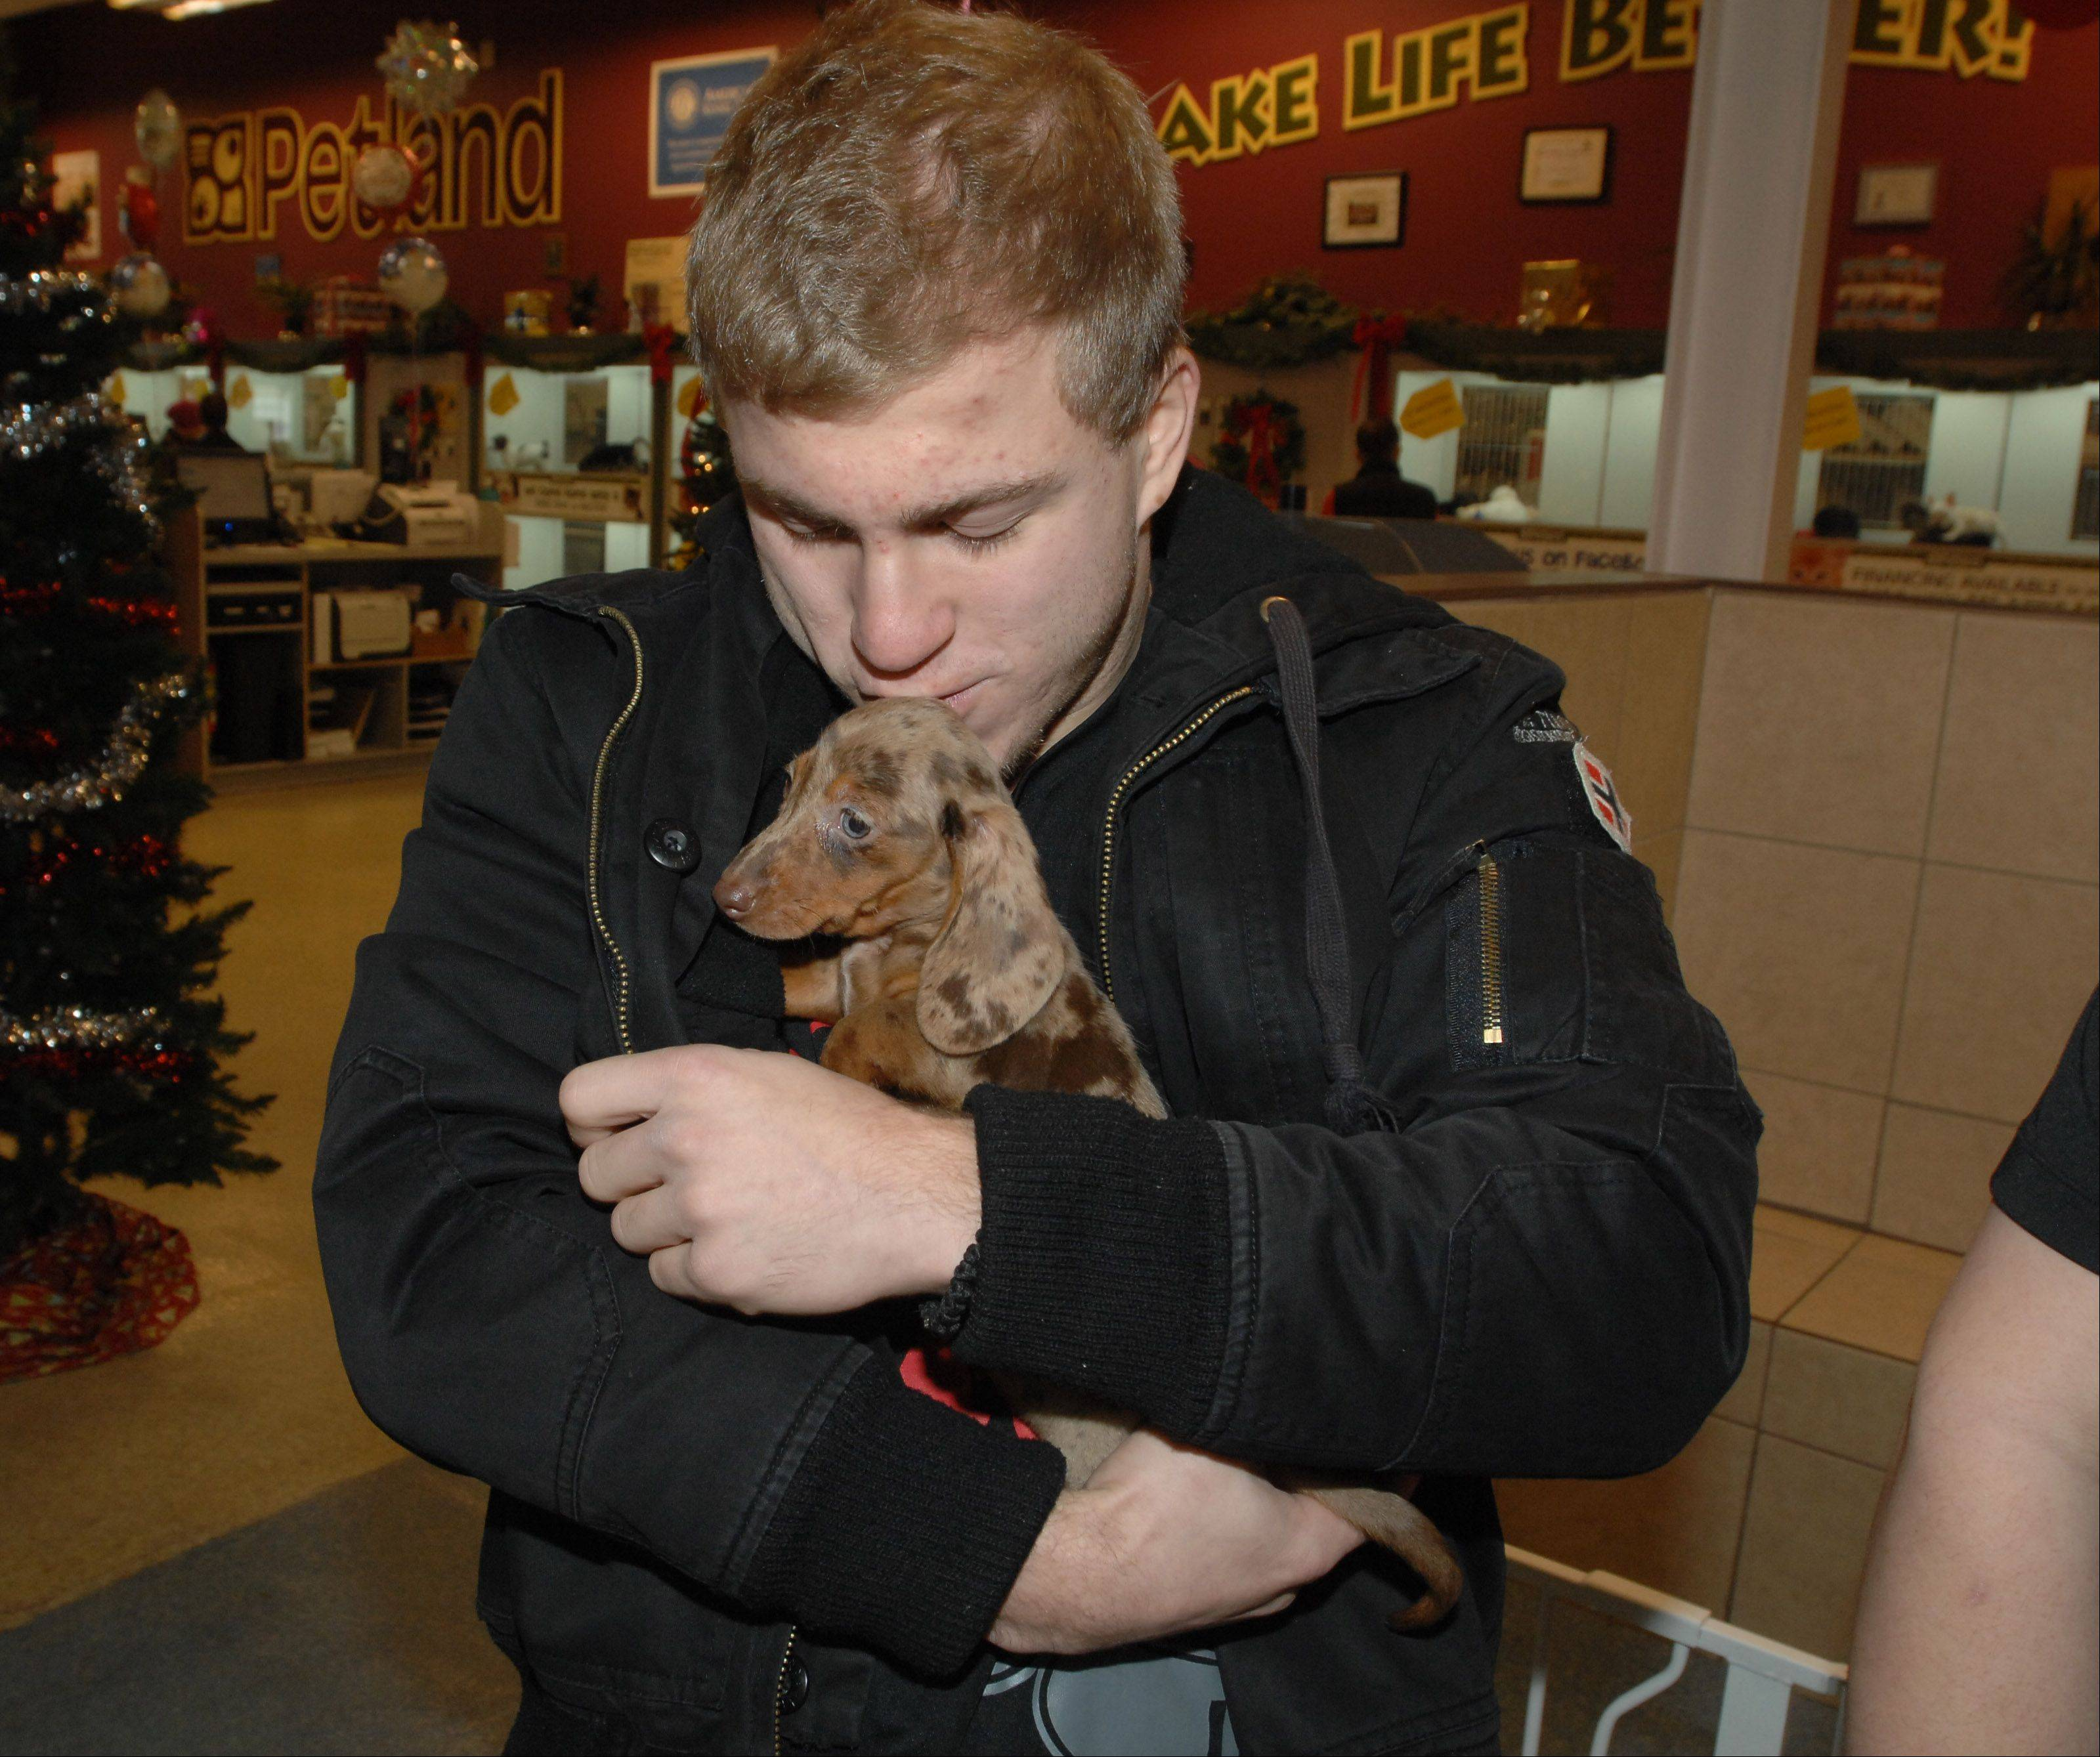 Matt Plackowski was given this Dachshund, which he later named Tootsie, to help him get through the murders of his young brother, another child and the family dog, also named Tootsie. The good folks at Petland also supplied Matt with all the dog items he will need to get started.